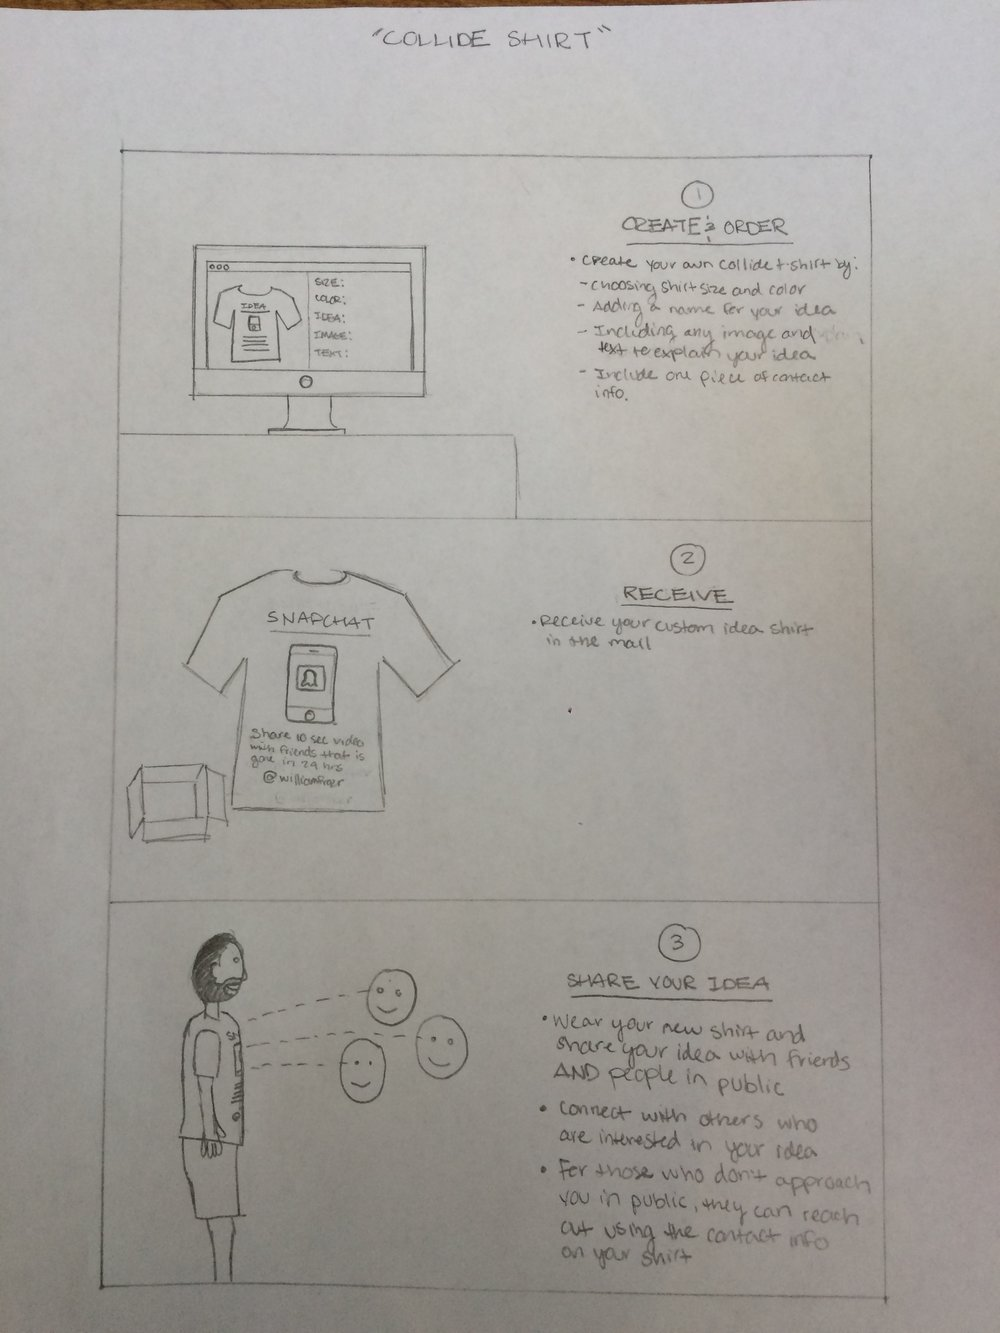 Solution Sketch #3 - A website that allows you to create a promotional t-shirt for your idea to wear in public in order to share with others.